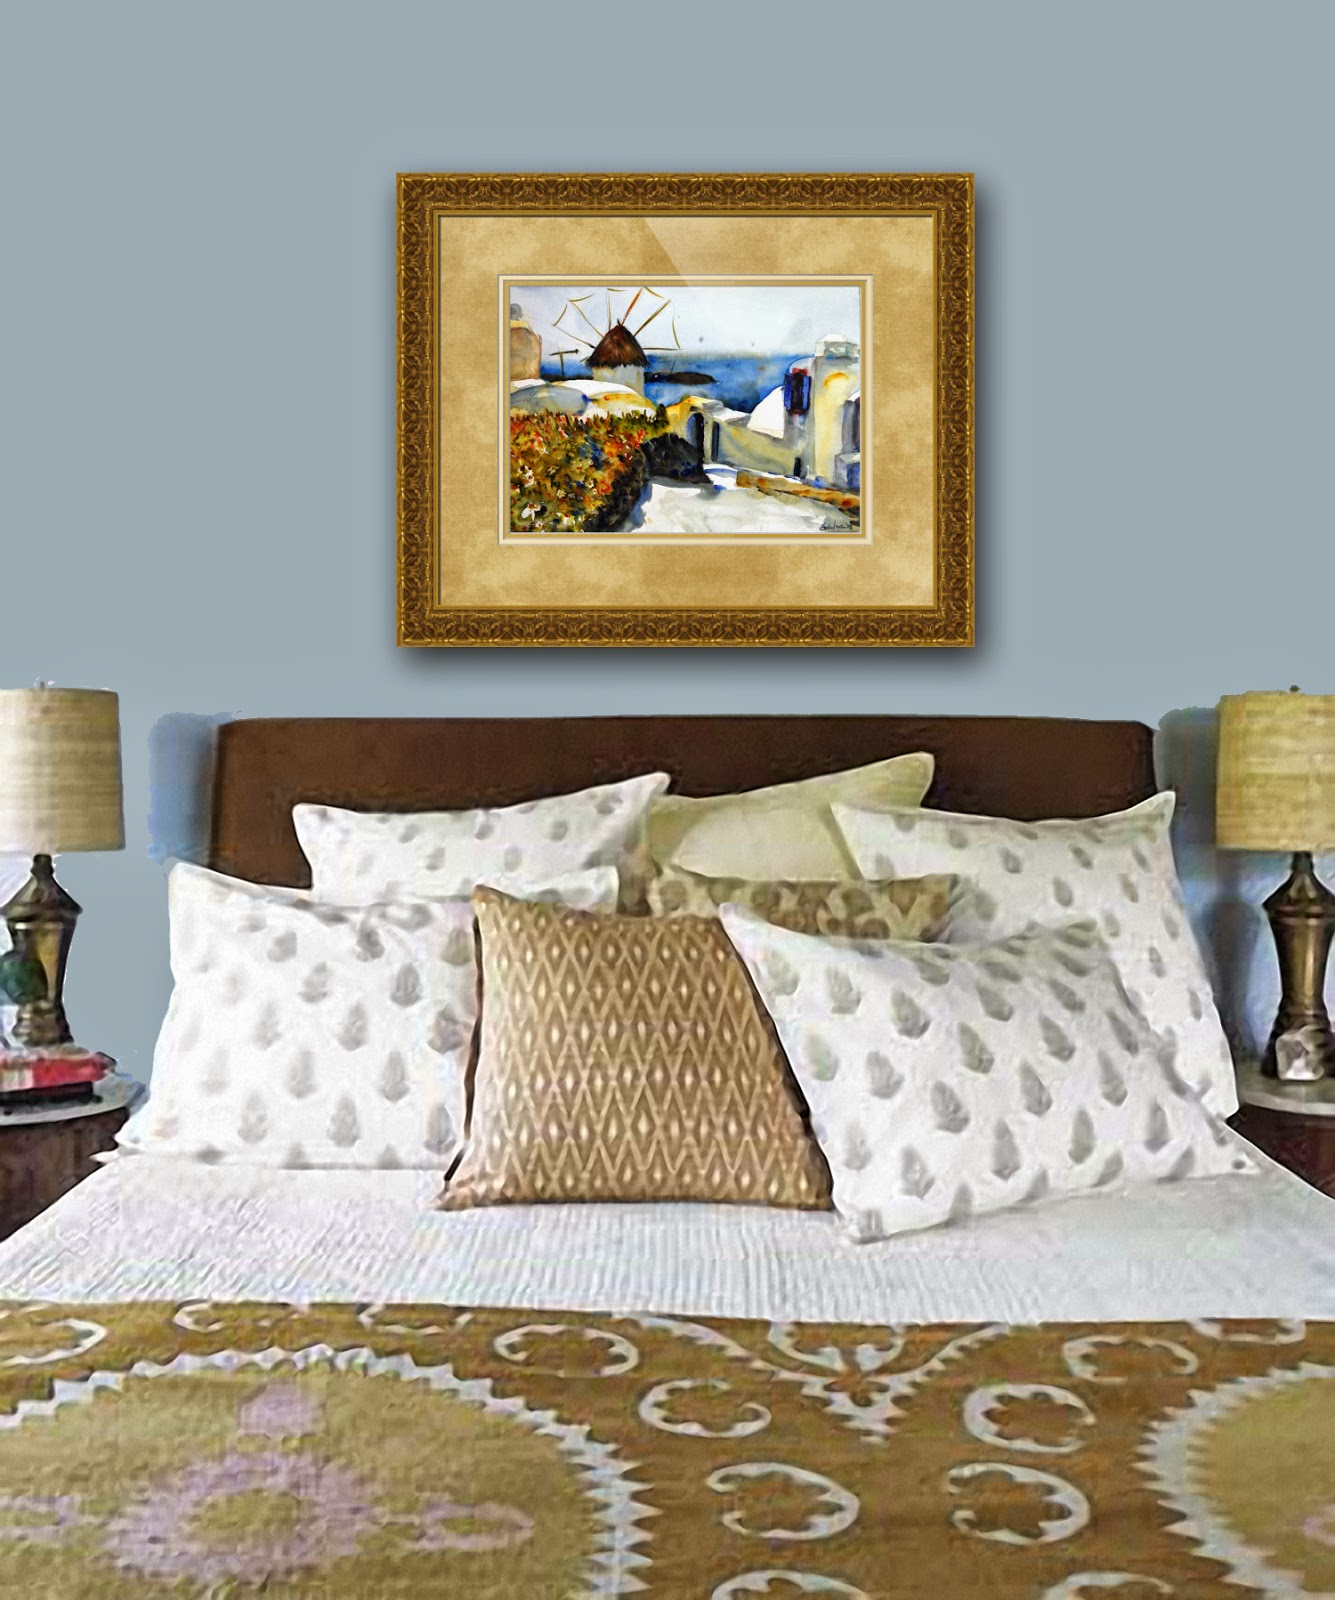 how to decorate a bedroom | how to hang pictures | best way to hang pictures | picture hanging ideas | discover  bedroom decorating ideas http://schulmanart.blogspot.com/2015/03/how-to-hang-pictures-like-pro-bedroom.html